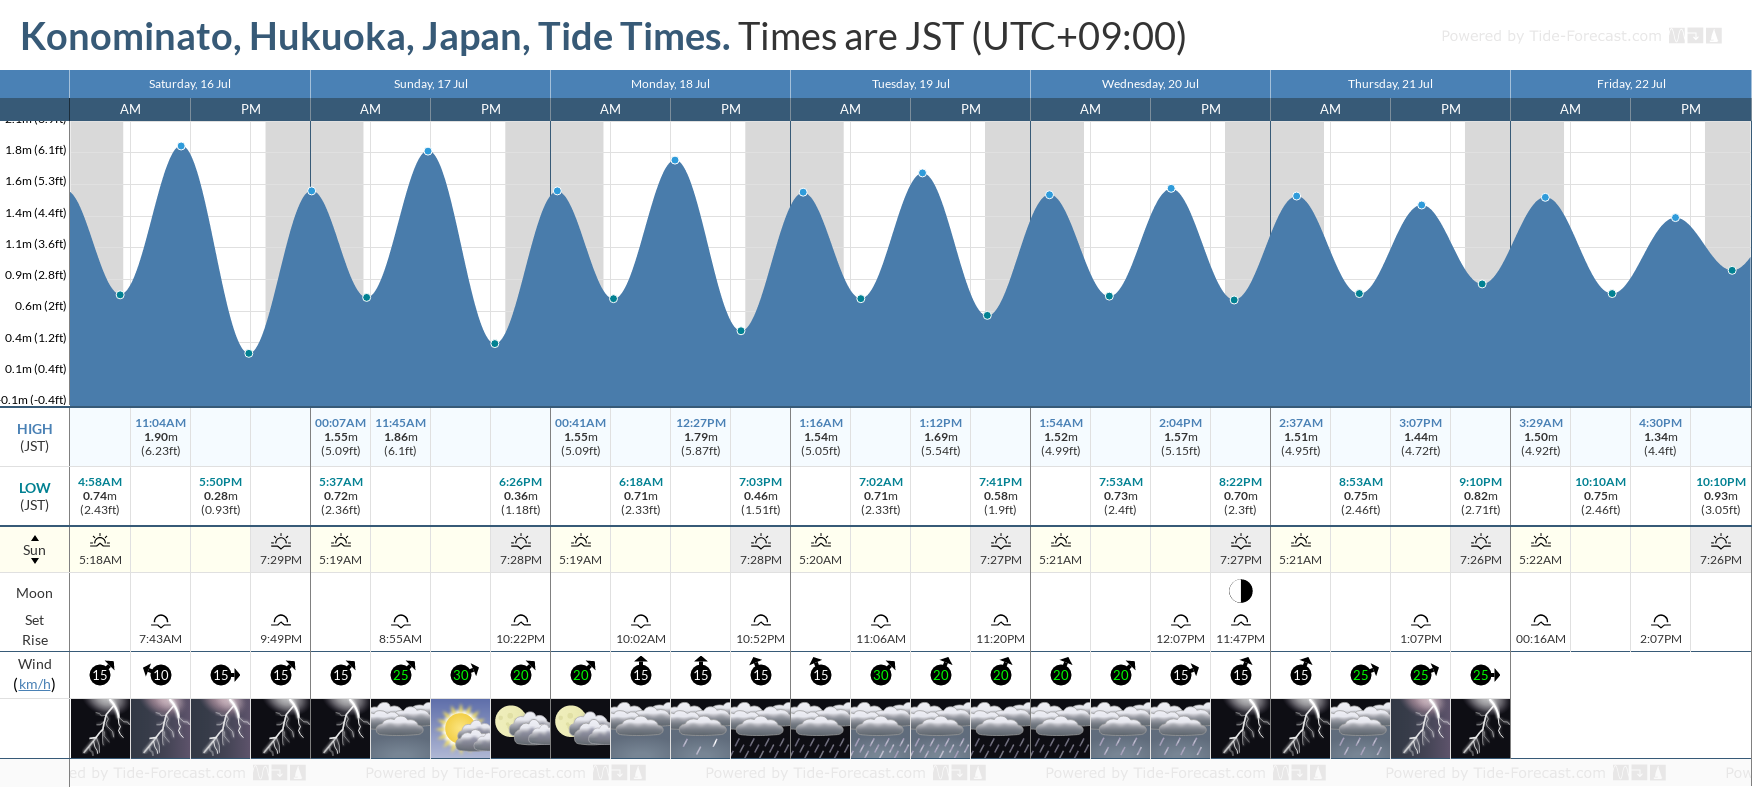 Konominato, Hukuoka, Japan Tide Chart including high and low tide tide times for the next 7 days